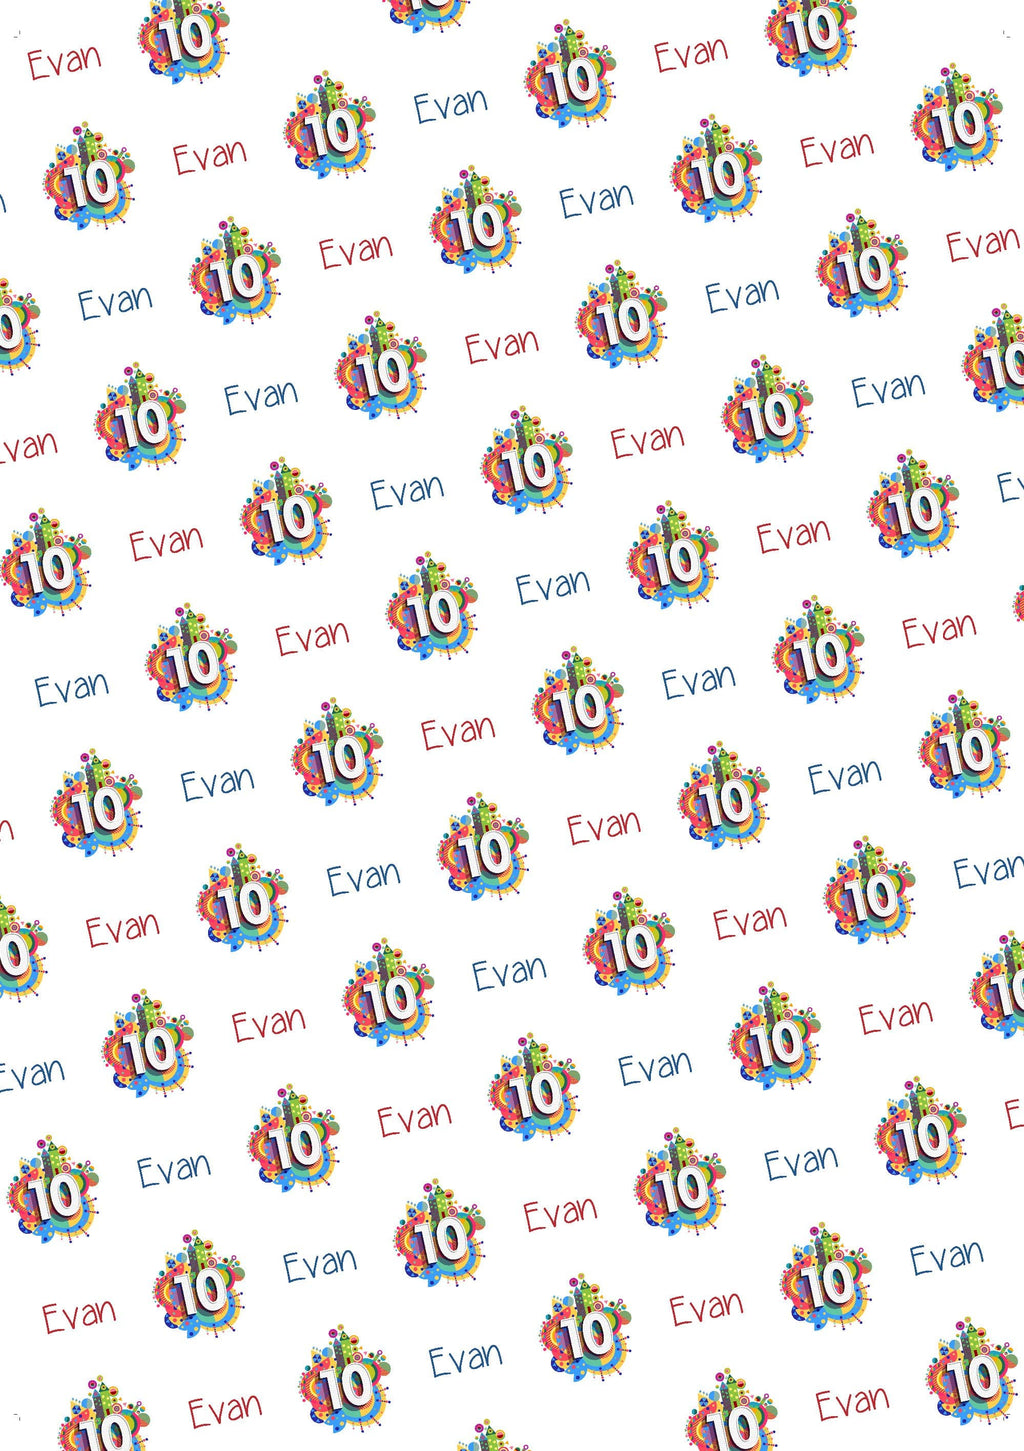 10th Birthday Personalized Birthday Tissue Paper - Potter's Printing